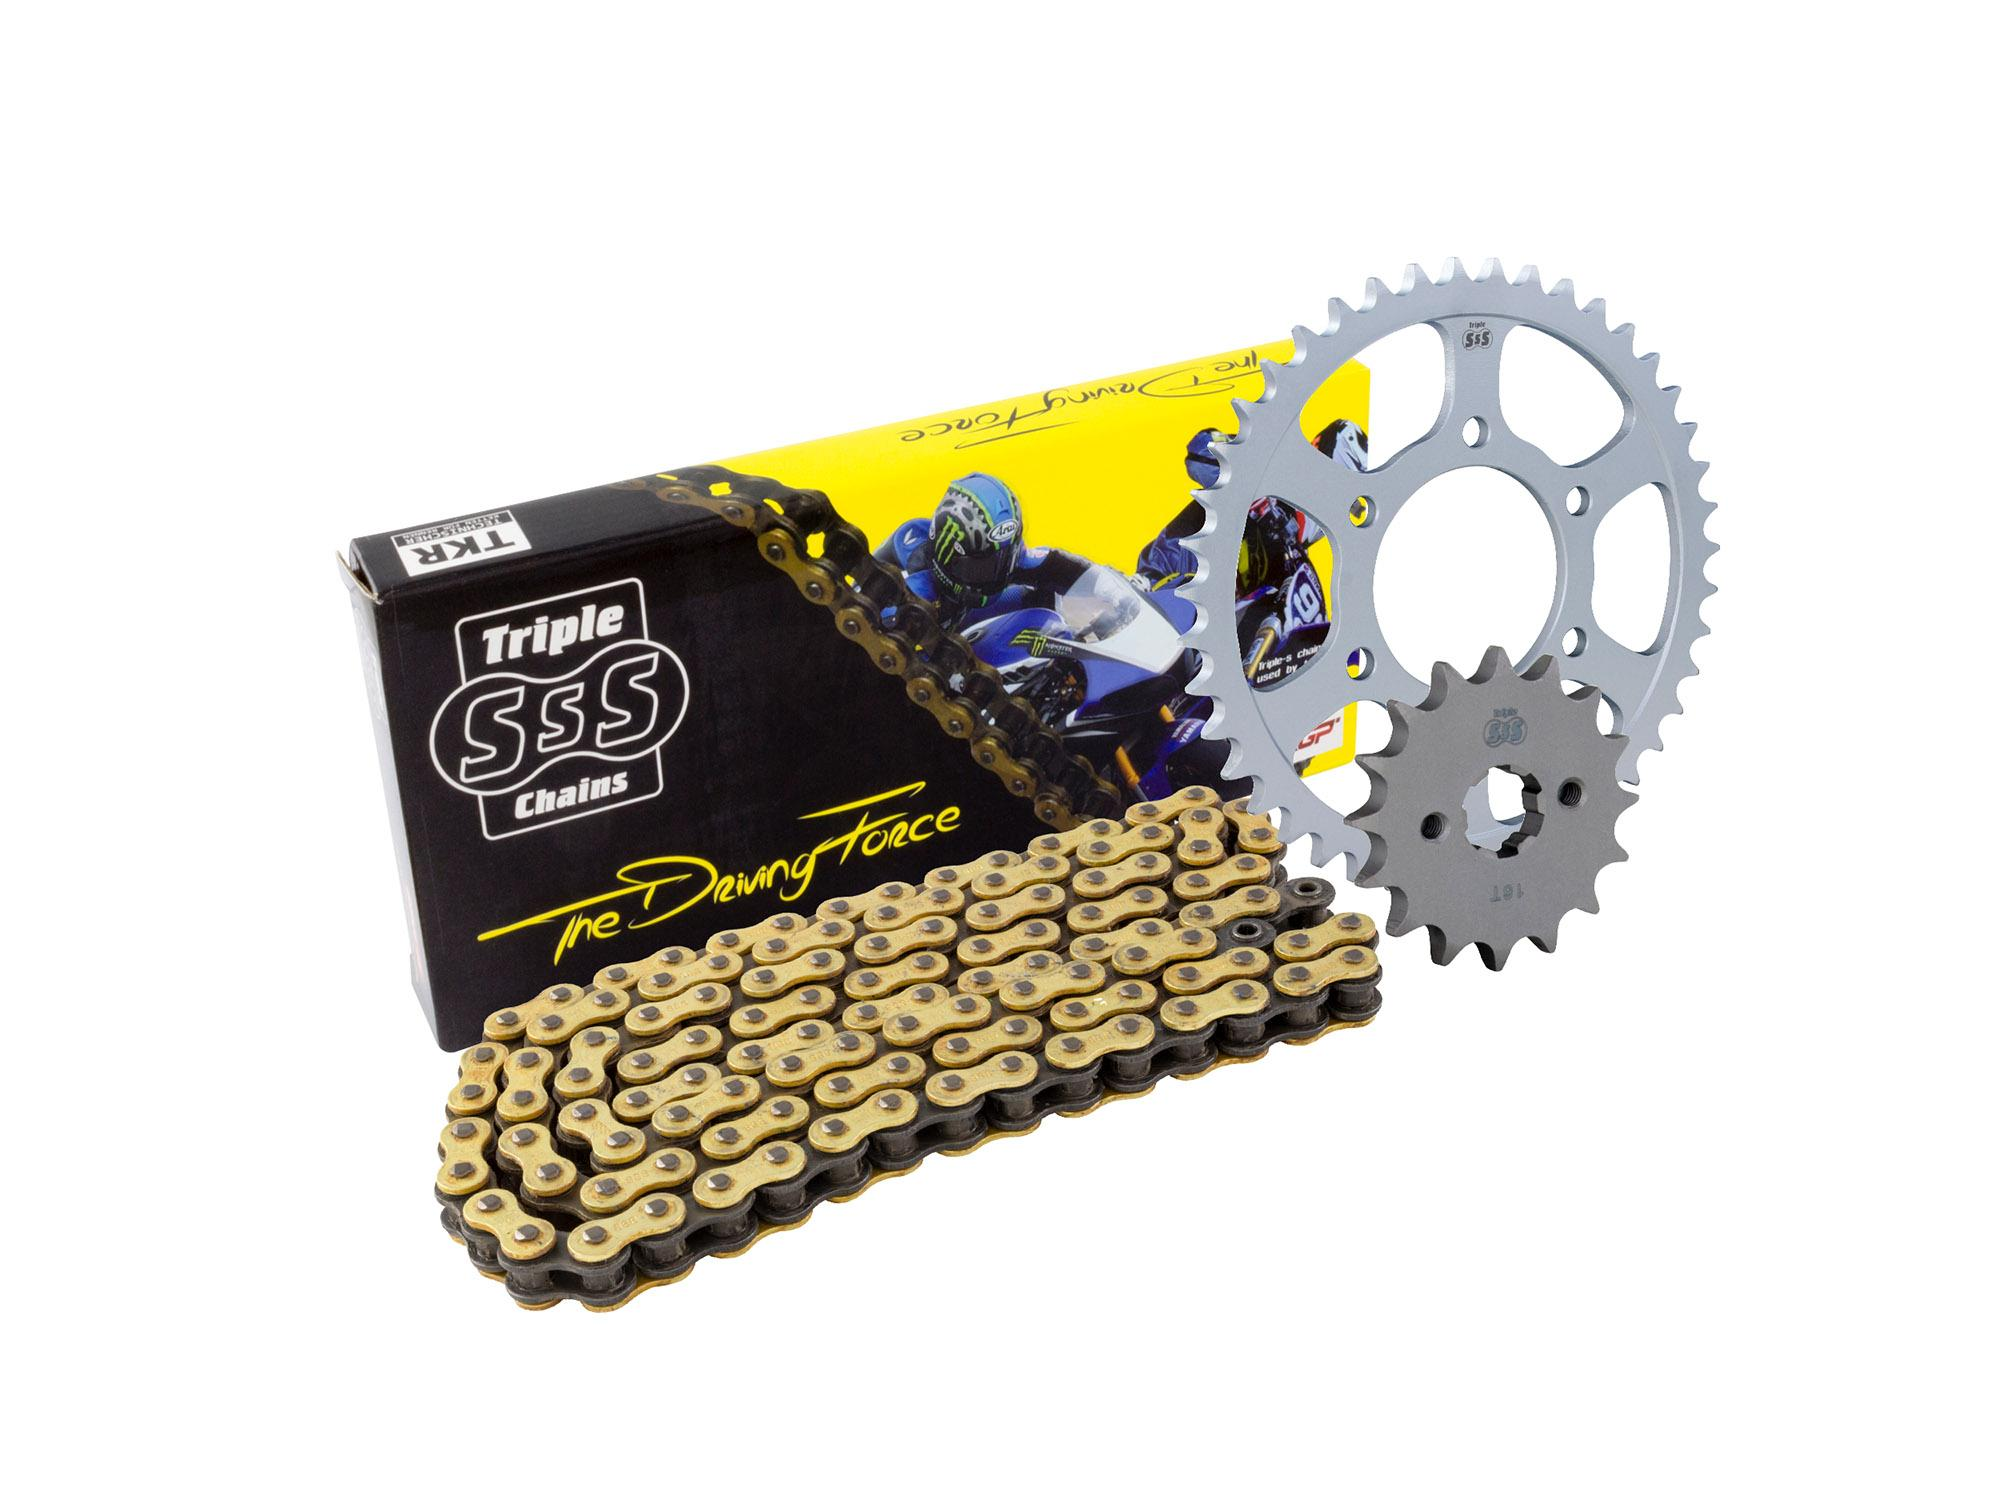 Yamaha MT01 05-10 Chain & Sprocket Kit: 17T Front, 39T Rear, HD O-Ring Gold Chain 530H 114 Link